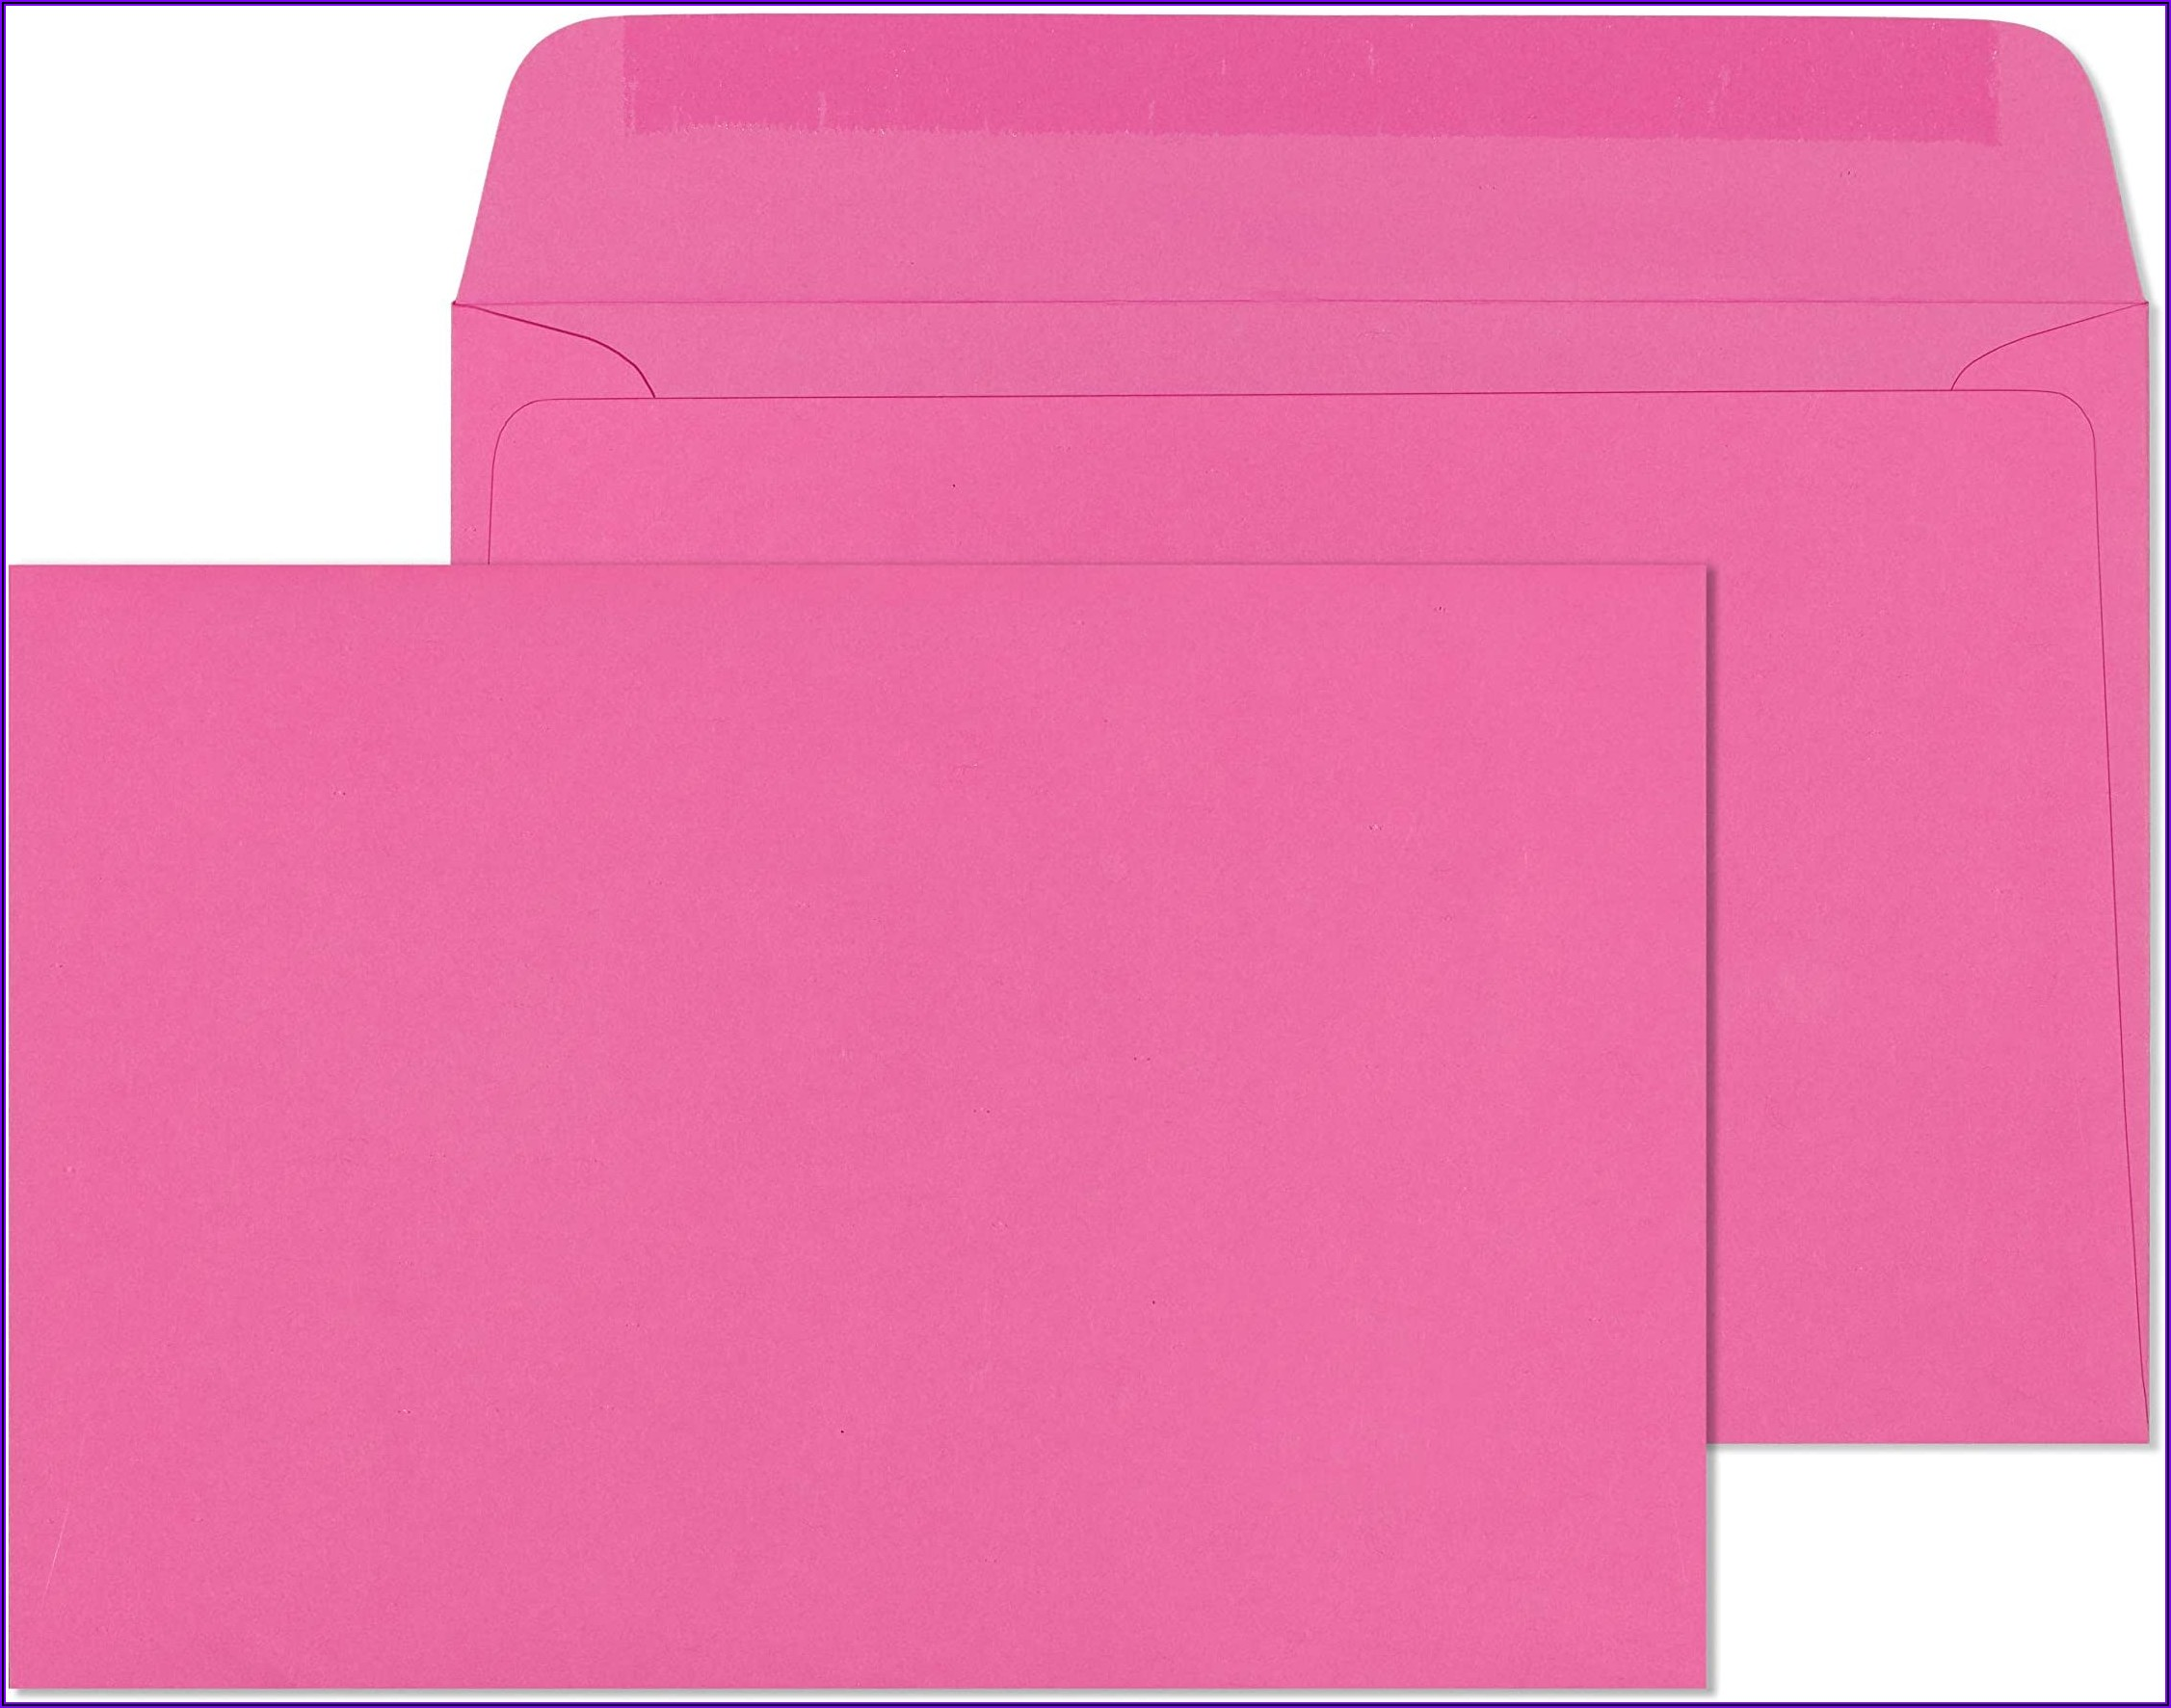 What Size Card Fits In A 6×9 Envelope